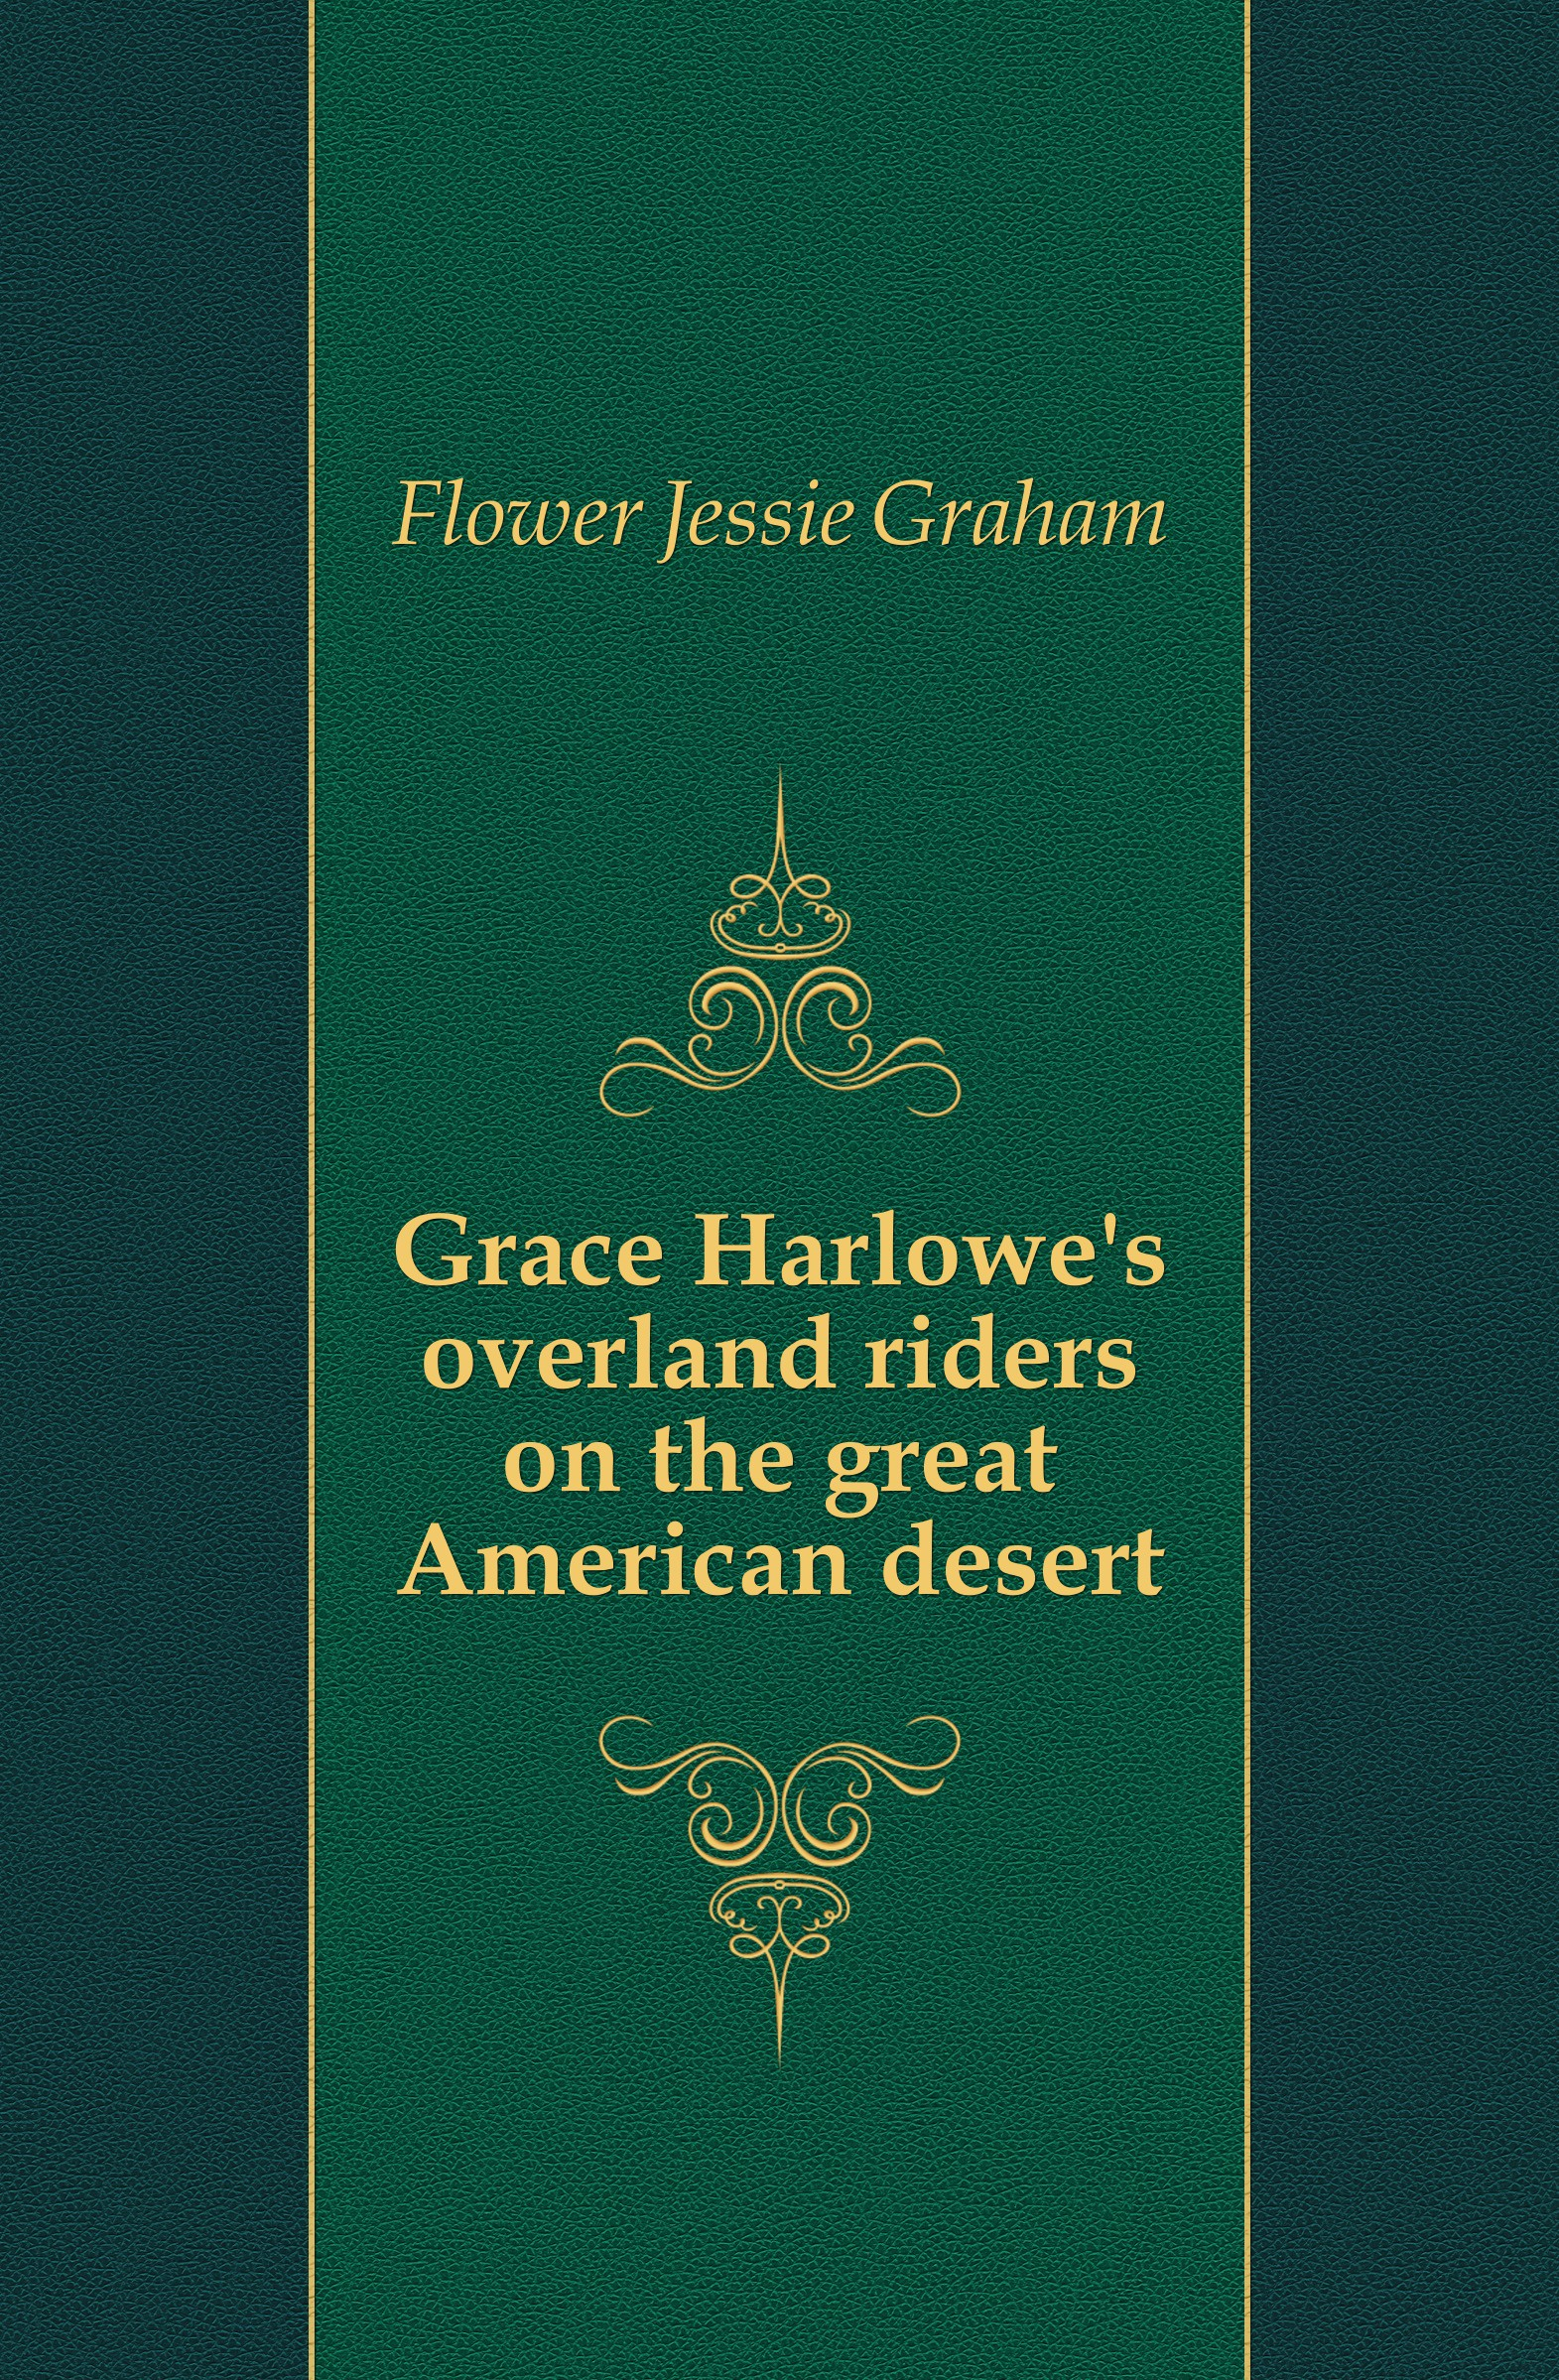 лучшая цена Flower Jessie Graham Grace Harlowes overland riders on the great American desert